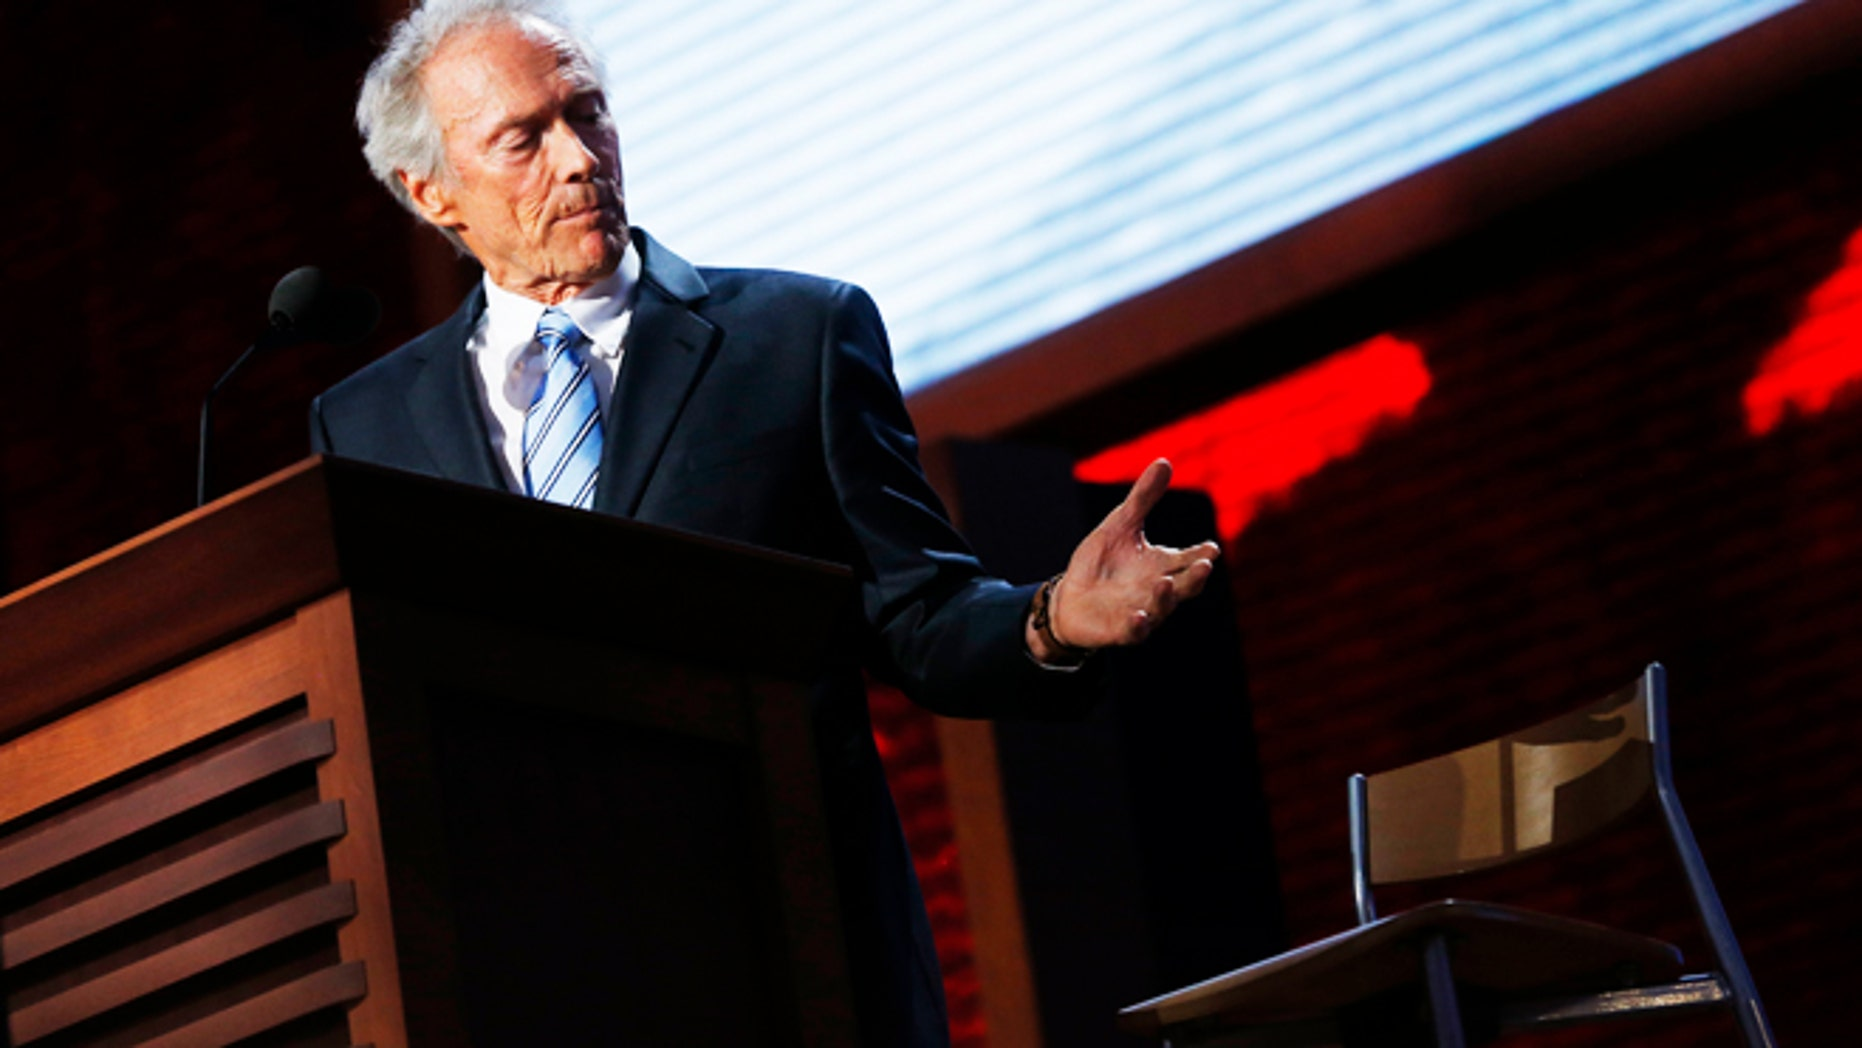 Actor Clint Eastwood addresses an empty chair and questions it as if it is U.S. President Obama, as he endorses Republican presidential nominee Mitt Romney during the final session of the Republican National Convention in Tampa, Florida, August 30, 2012.   REUTERS/Eric Thayer (UNITED STATES  - Tags: POLITICS ELECTIONS TPX IMAGES OF THE DAY)   - RTR37B1D